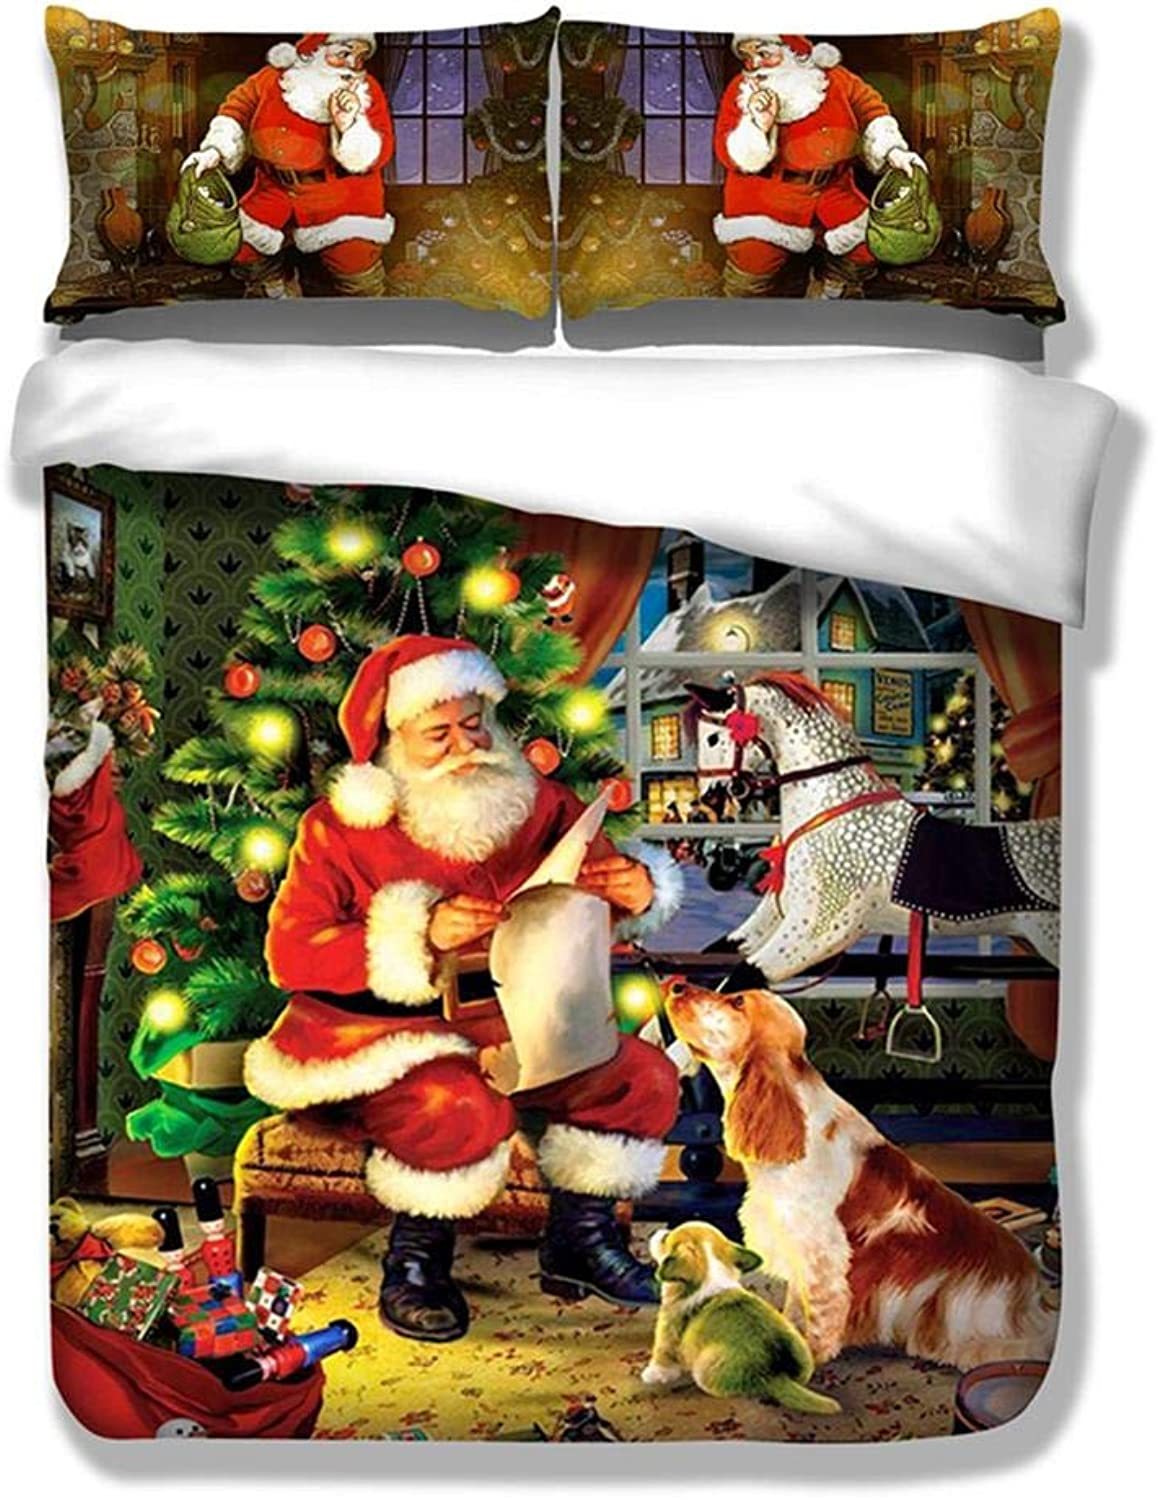 Vivicute 3 PCS Christmas Quilt Cover Pillows Cover Santa Claus Ultra Soft Microfiber Bedroom Bedding Cover Sets